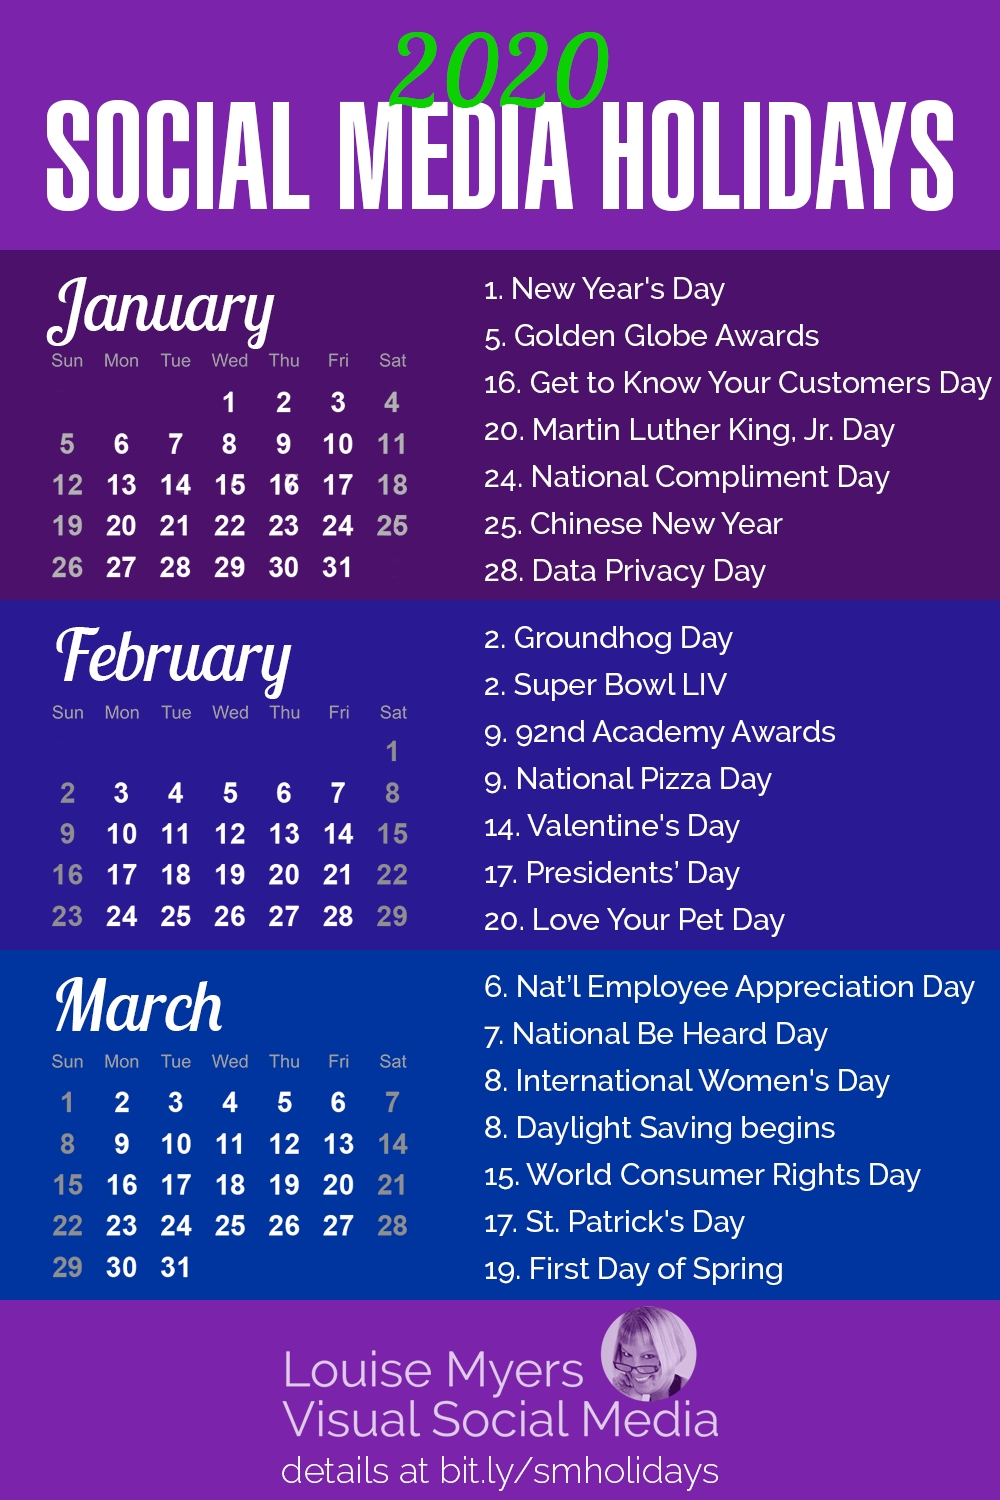 84 Social Media Holidays You Need In 2020: Indispensable! pertaining to Special Calendar Days In 2020